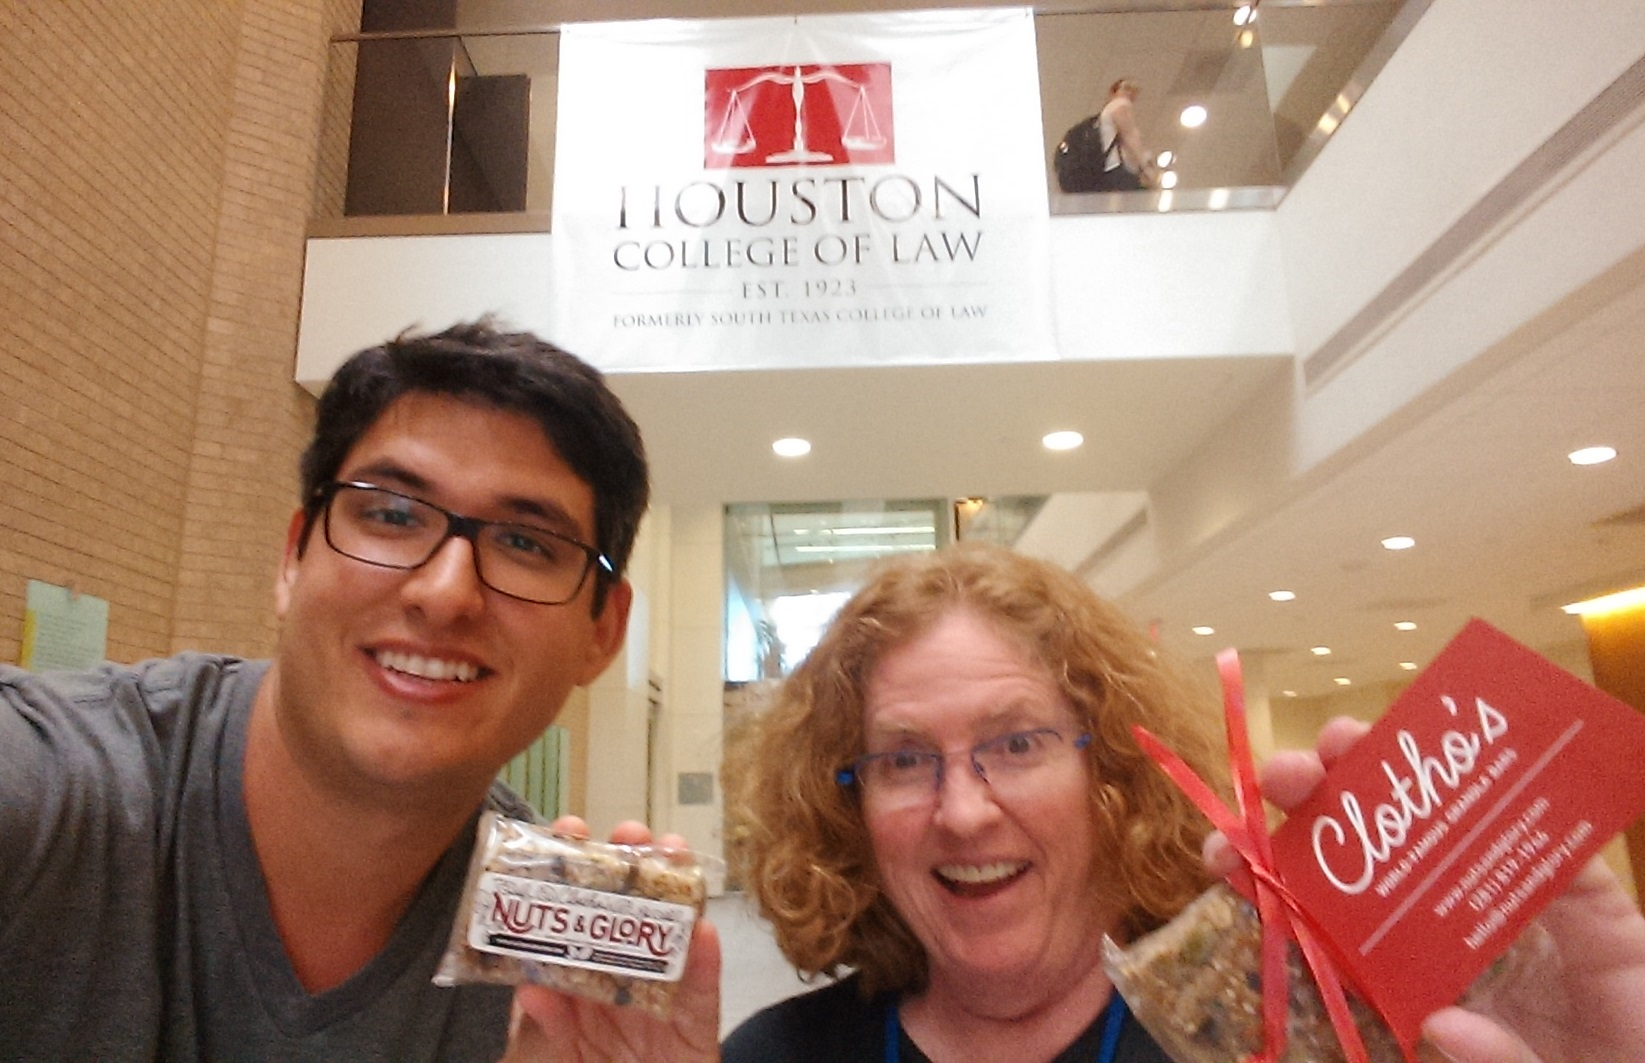 A big, big thank you to Jorge, Rebekah and the rest of the team at the South Texas College of Law trademark clinic for guiding me through the trademarking process. I'm really looking forward to working with you all over the next few months. So glad you enjoyed the granola bars!!